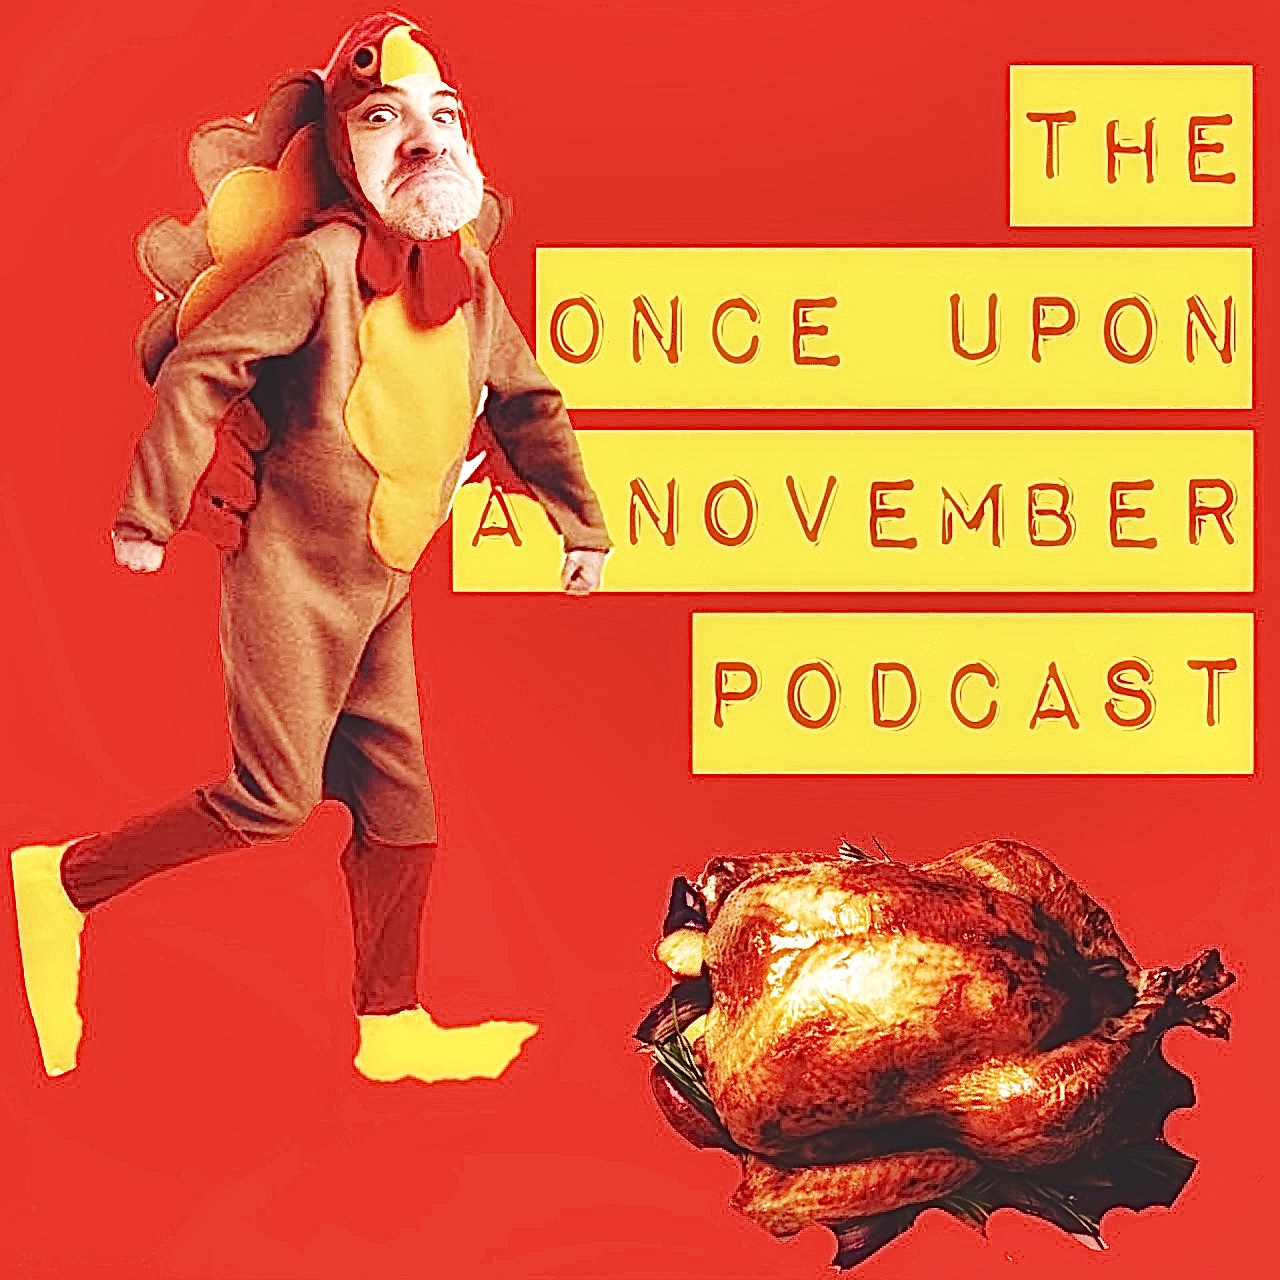 Once upon a November Podcast